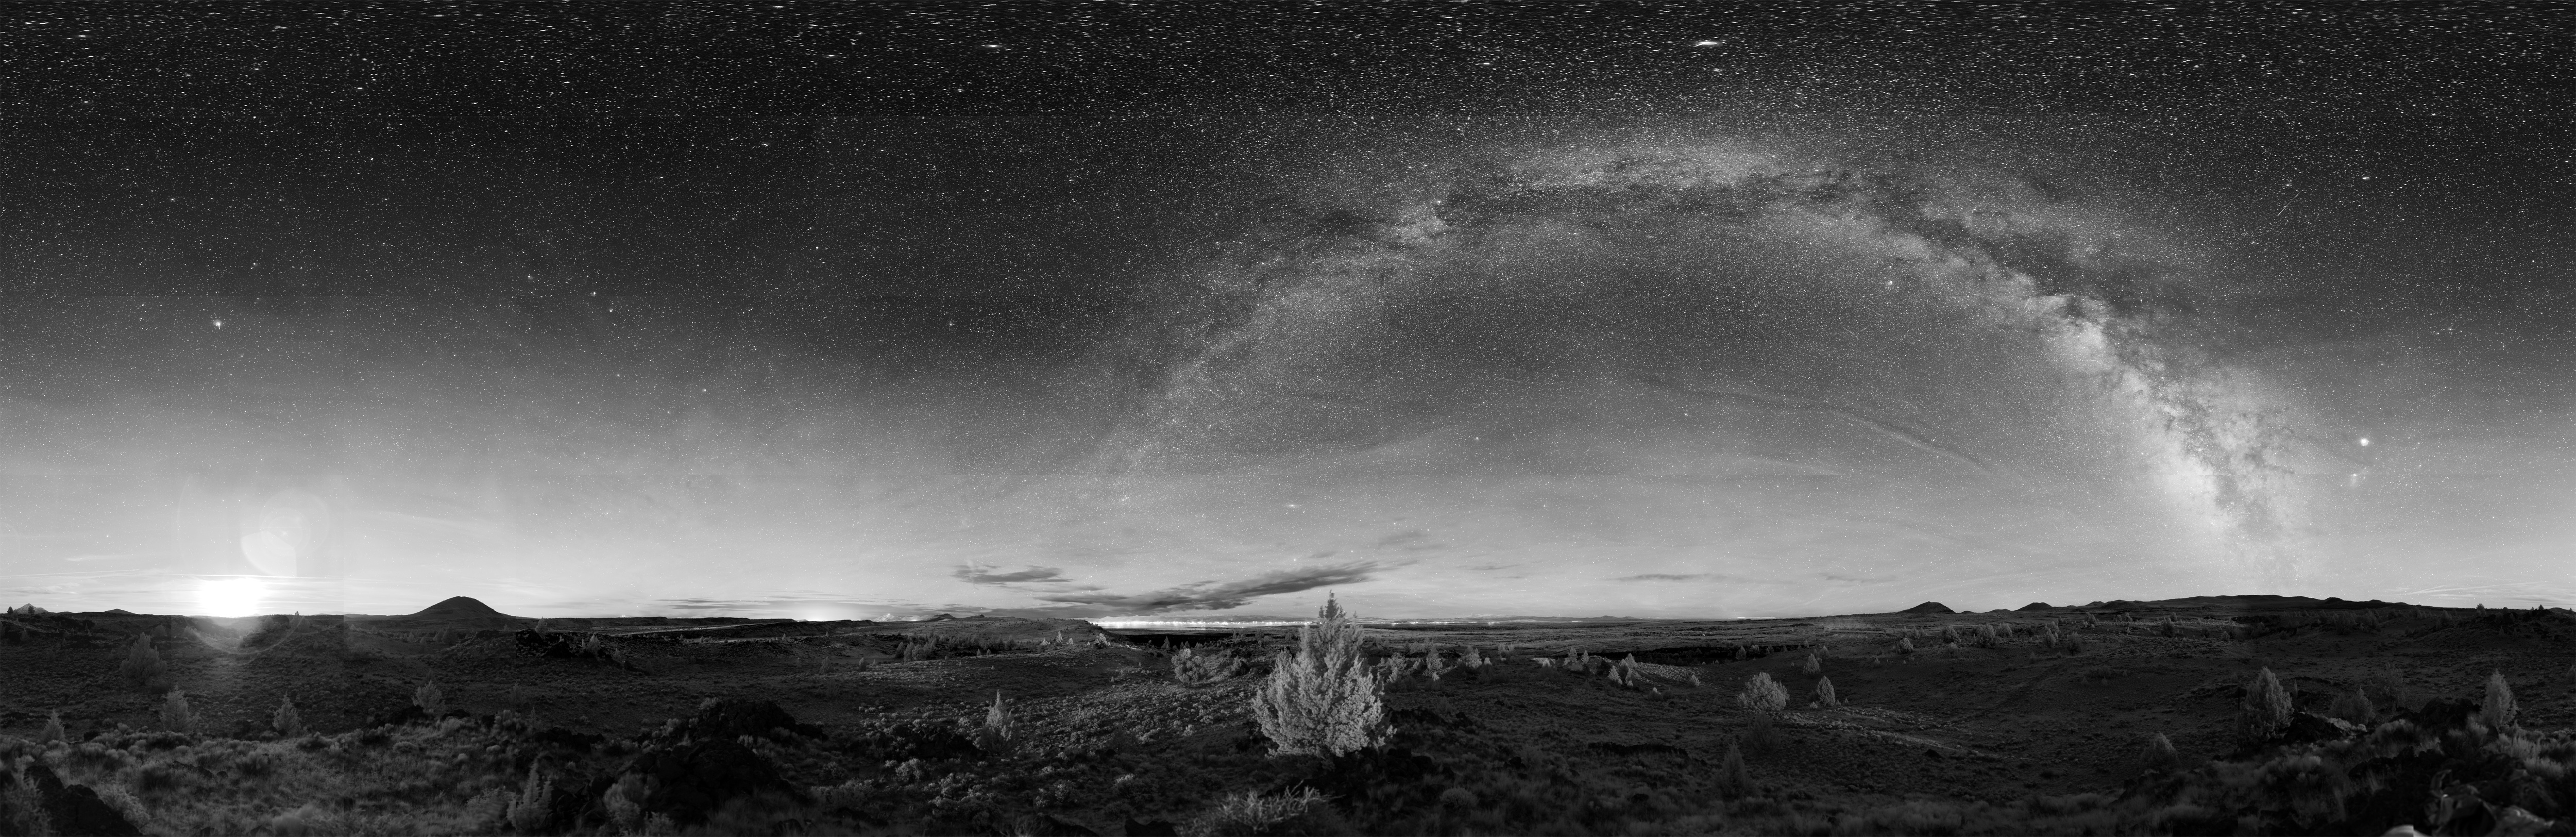 Panorama of the Lava Beds Night Sky - Right Click and